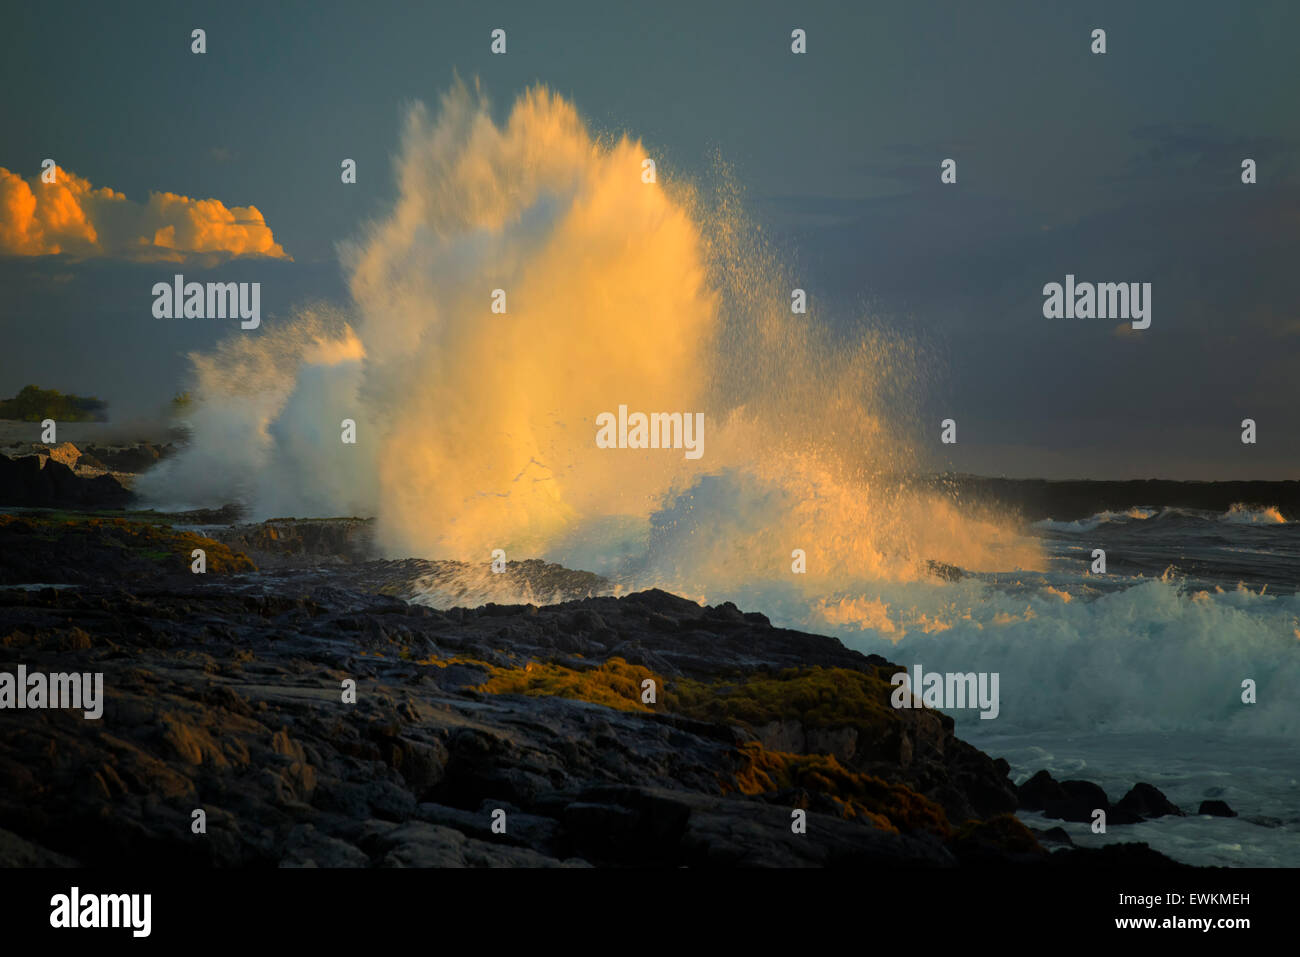 Sturm-Welle im Sunset on The Big Island Hawaii Stockbild